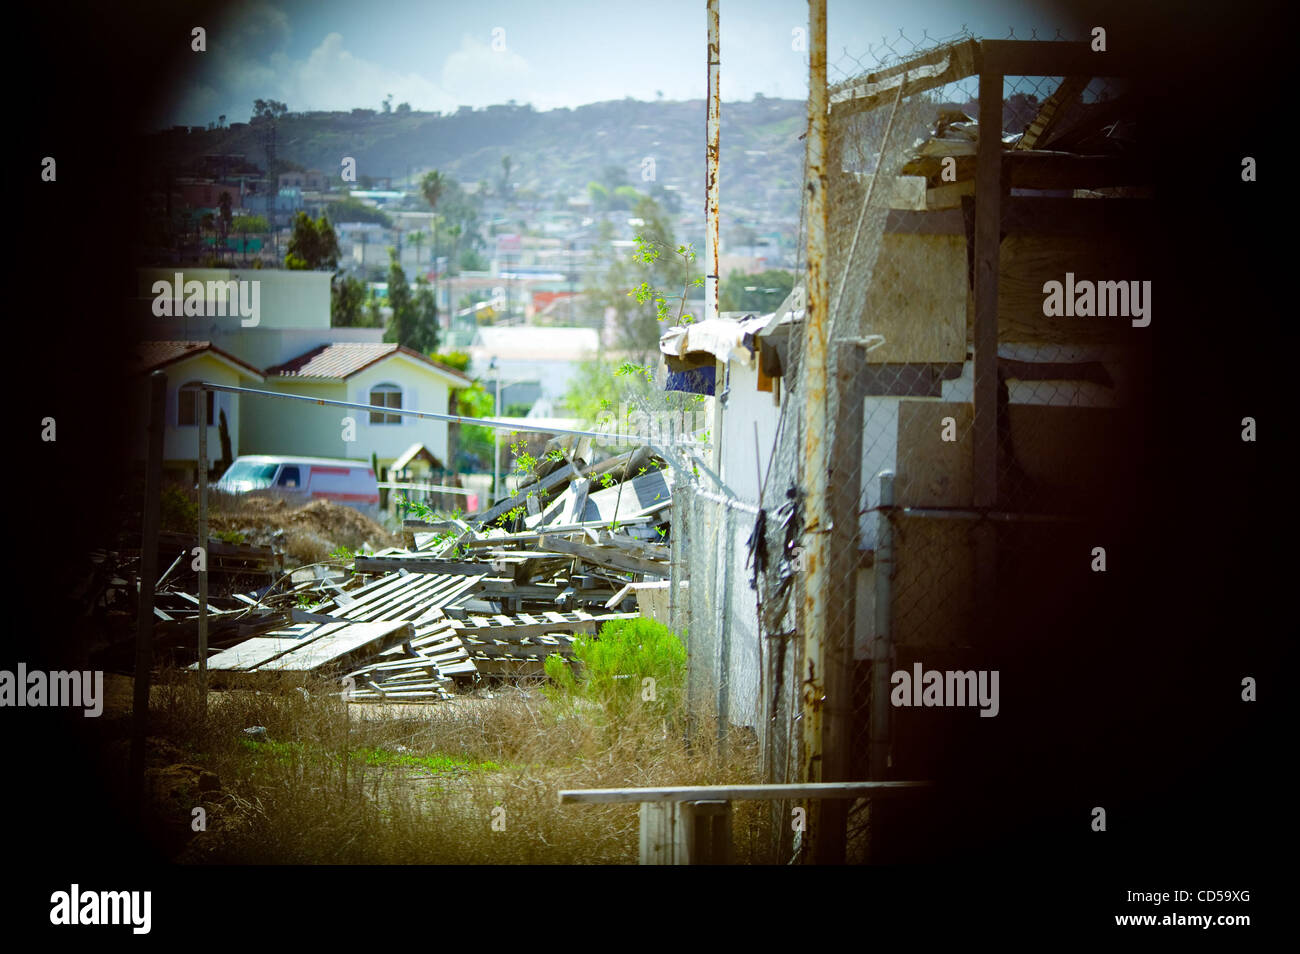 Tijuana viewed from the American side through a hole in the border wall Stock Photo